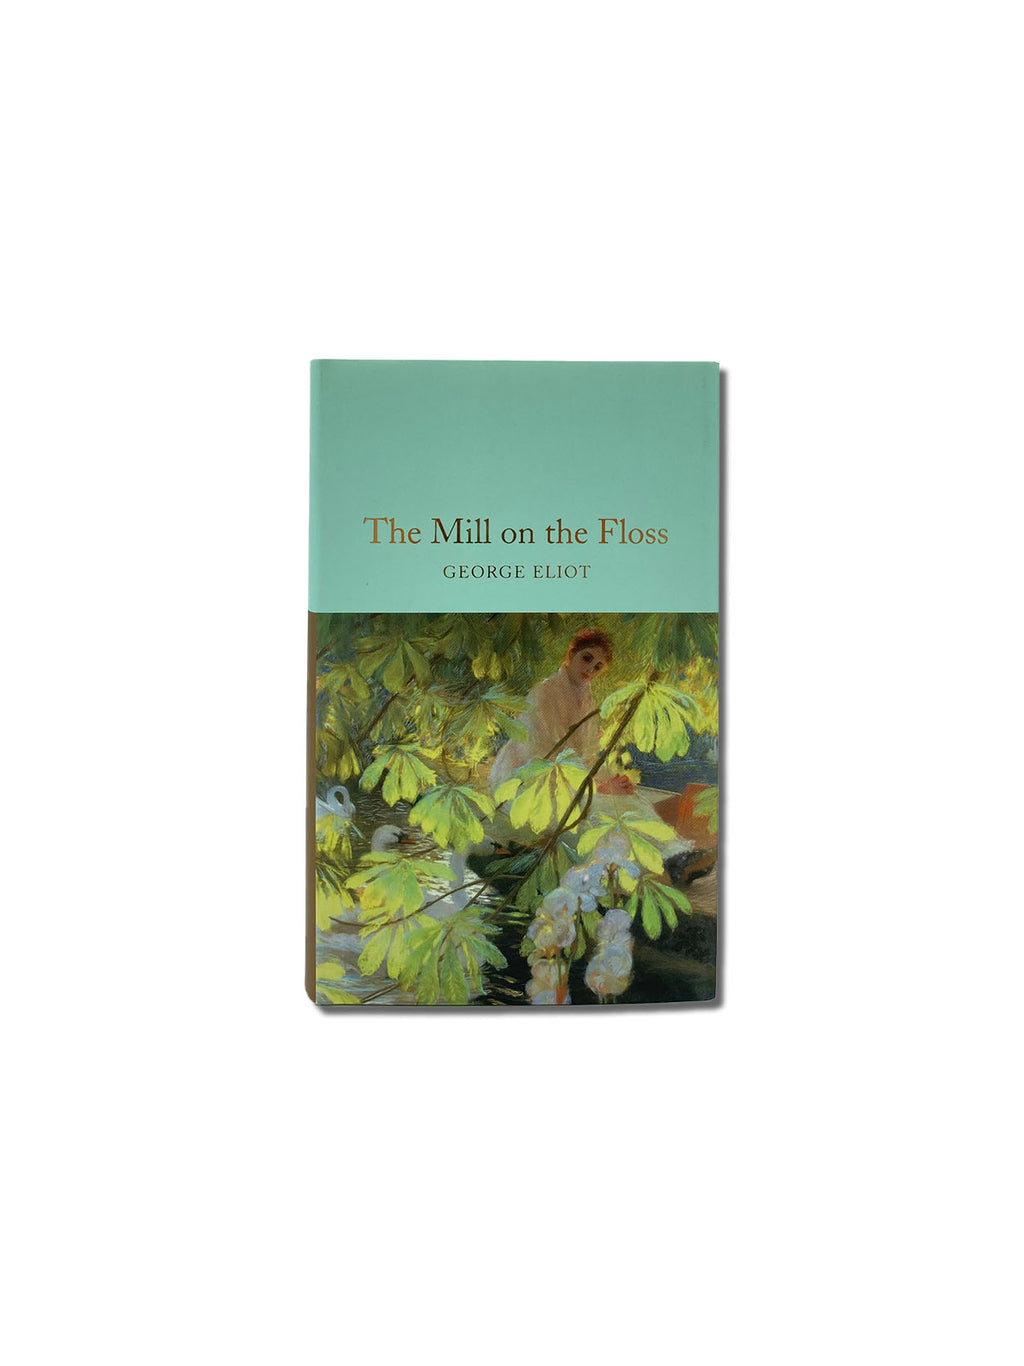 The Mill on the Floss - Macmillan Collector's Library